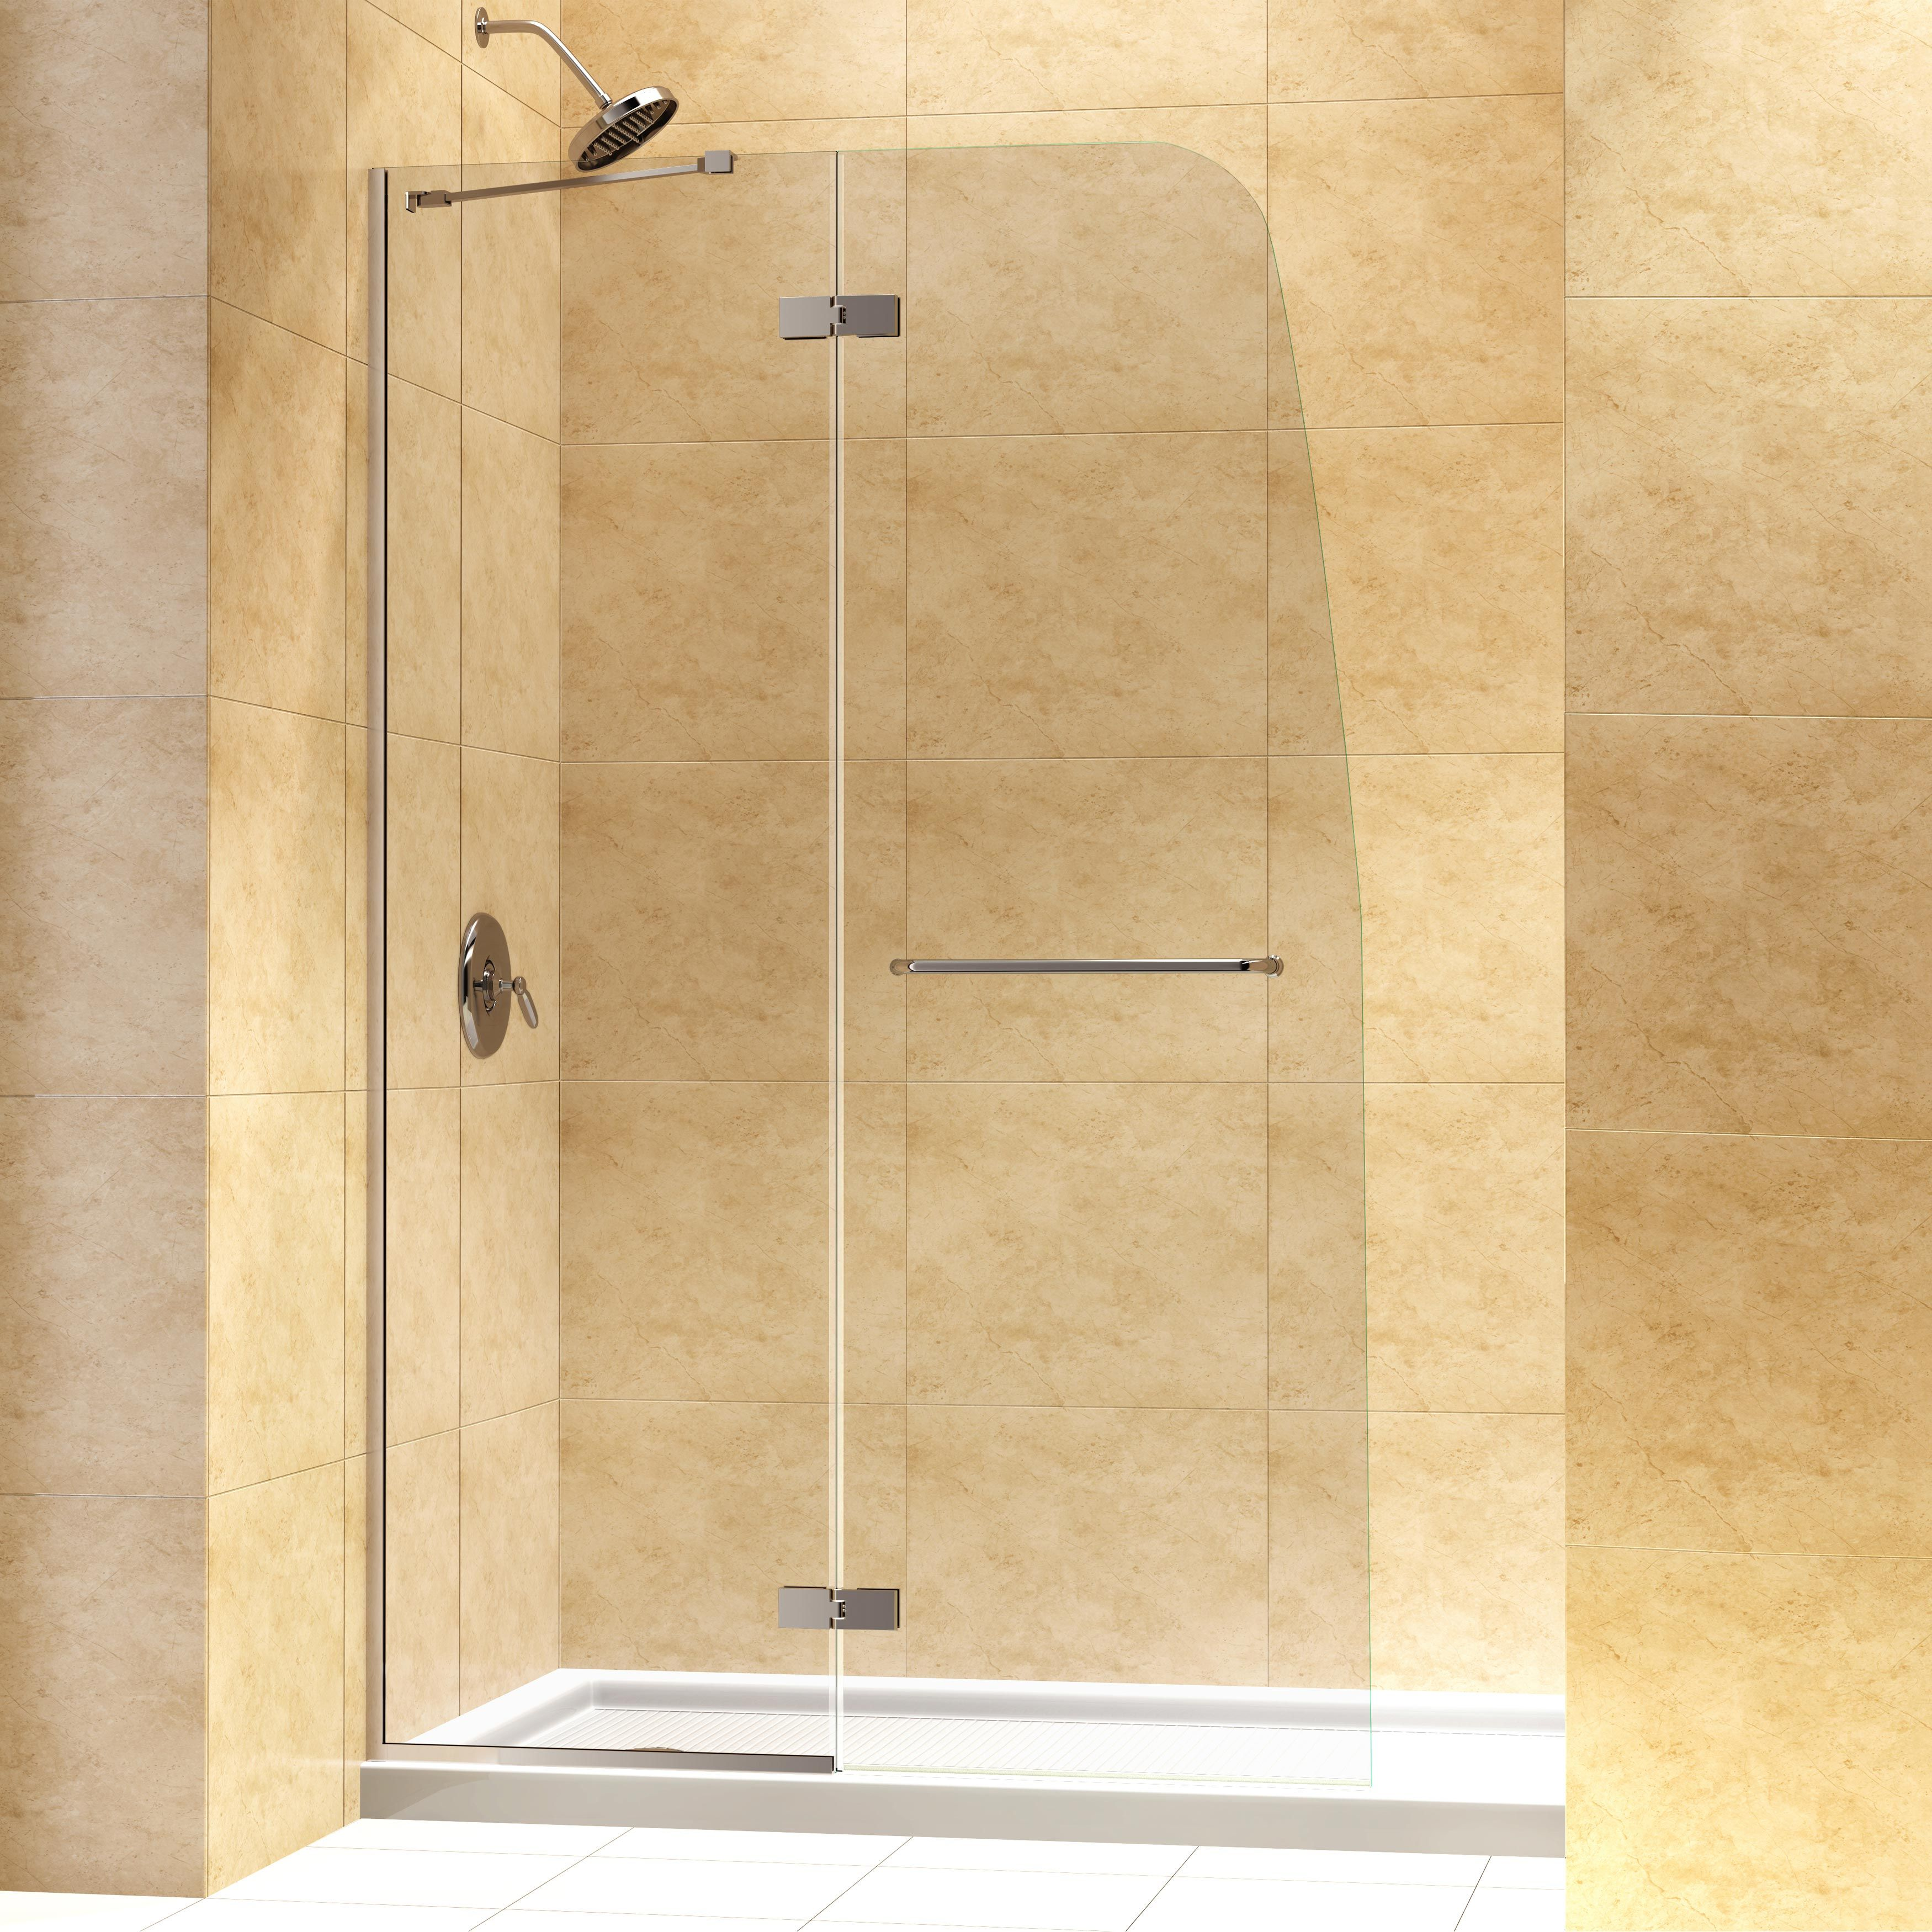 Put The Finishing Touches On Your Bathroom With This Frameless